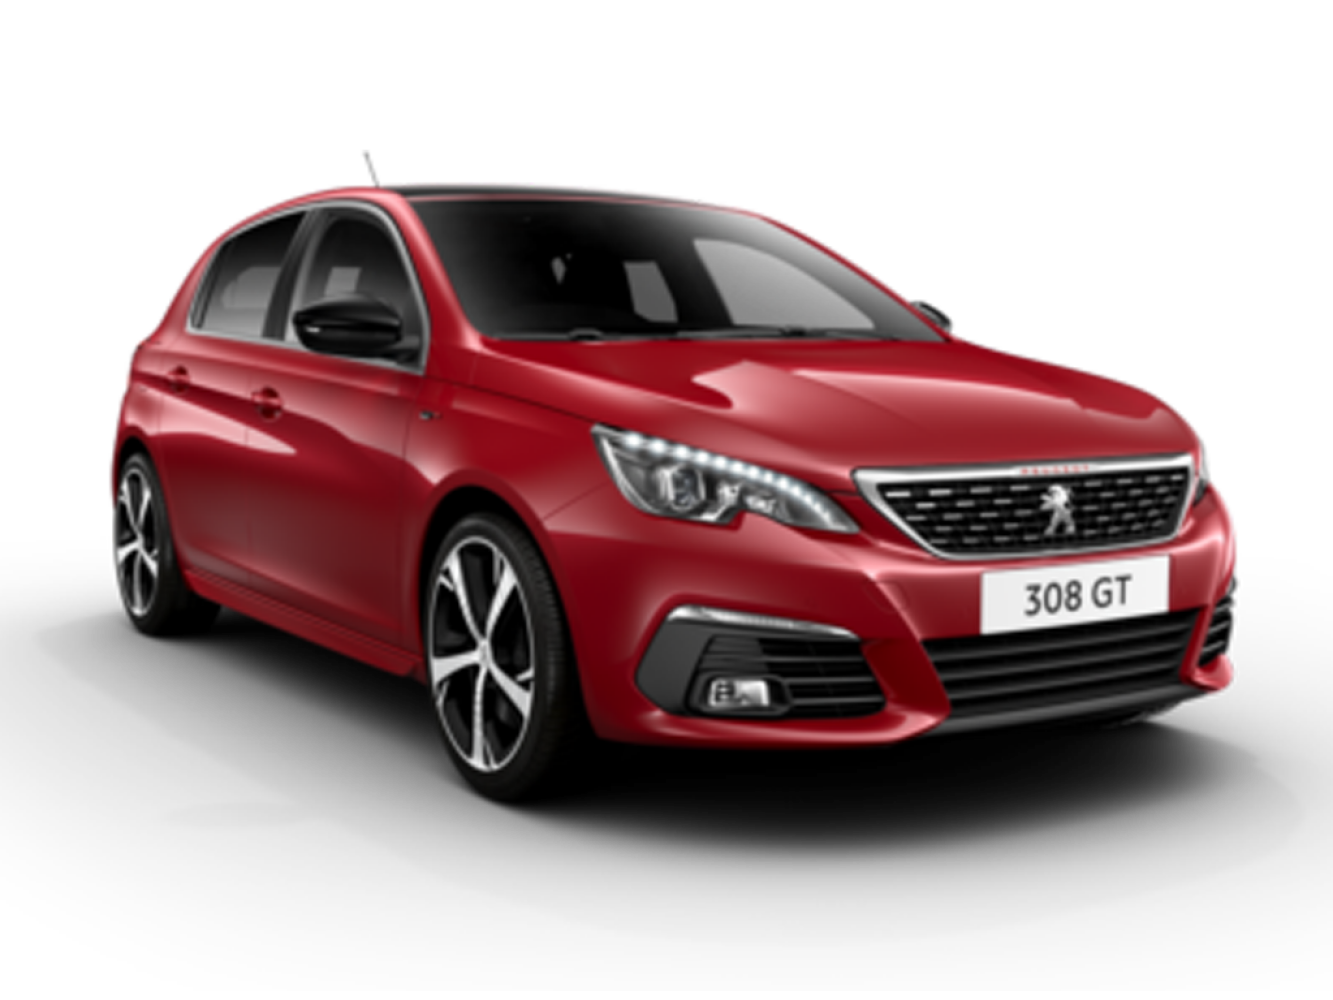 new peugeot 308 2 0 bluehdi 180 gt 5dr eat8 diesel hatchback for sale bristol street. Black Bedroom Furniture Sets. Home Design Ideas